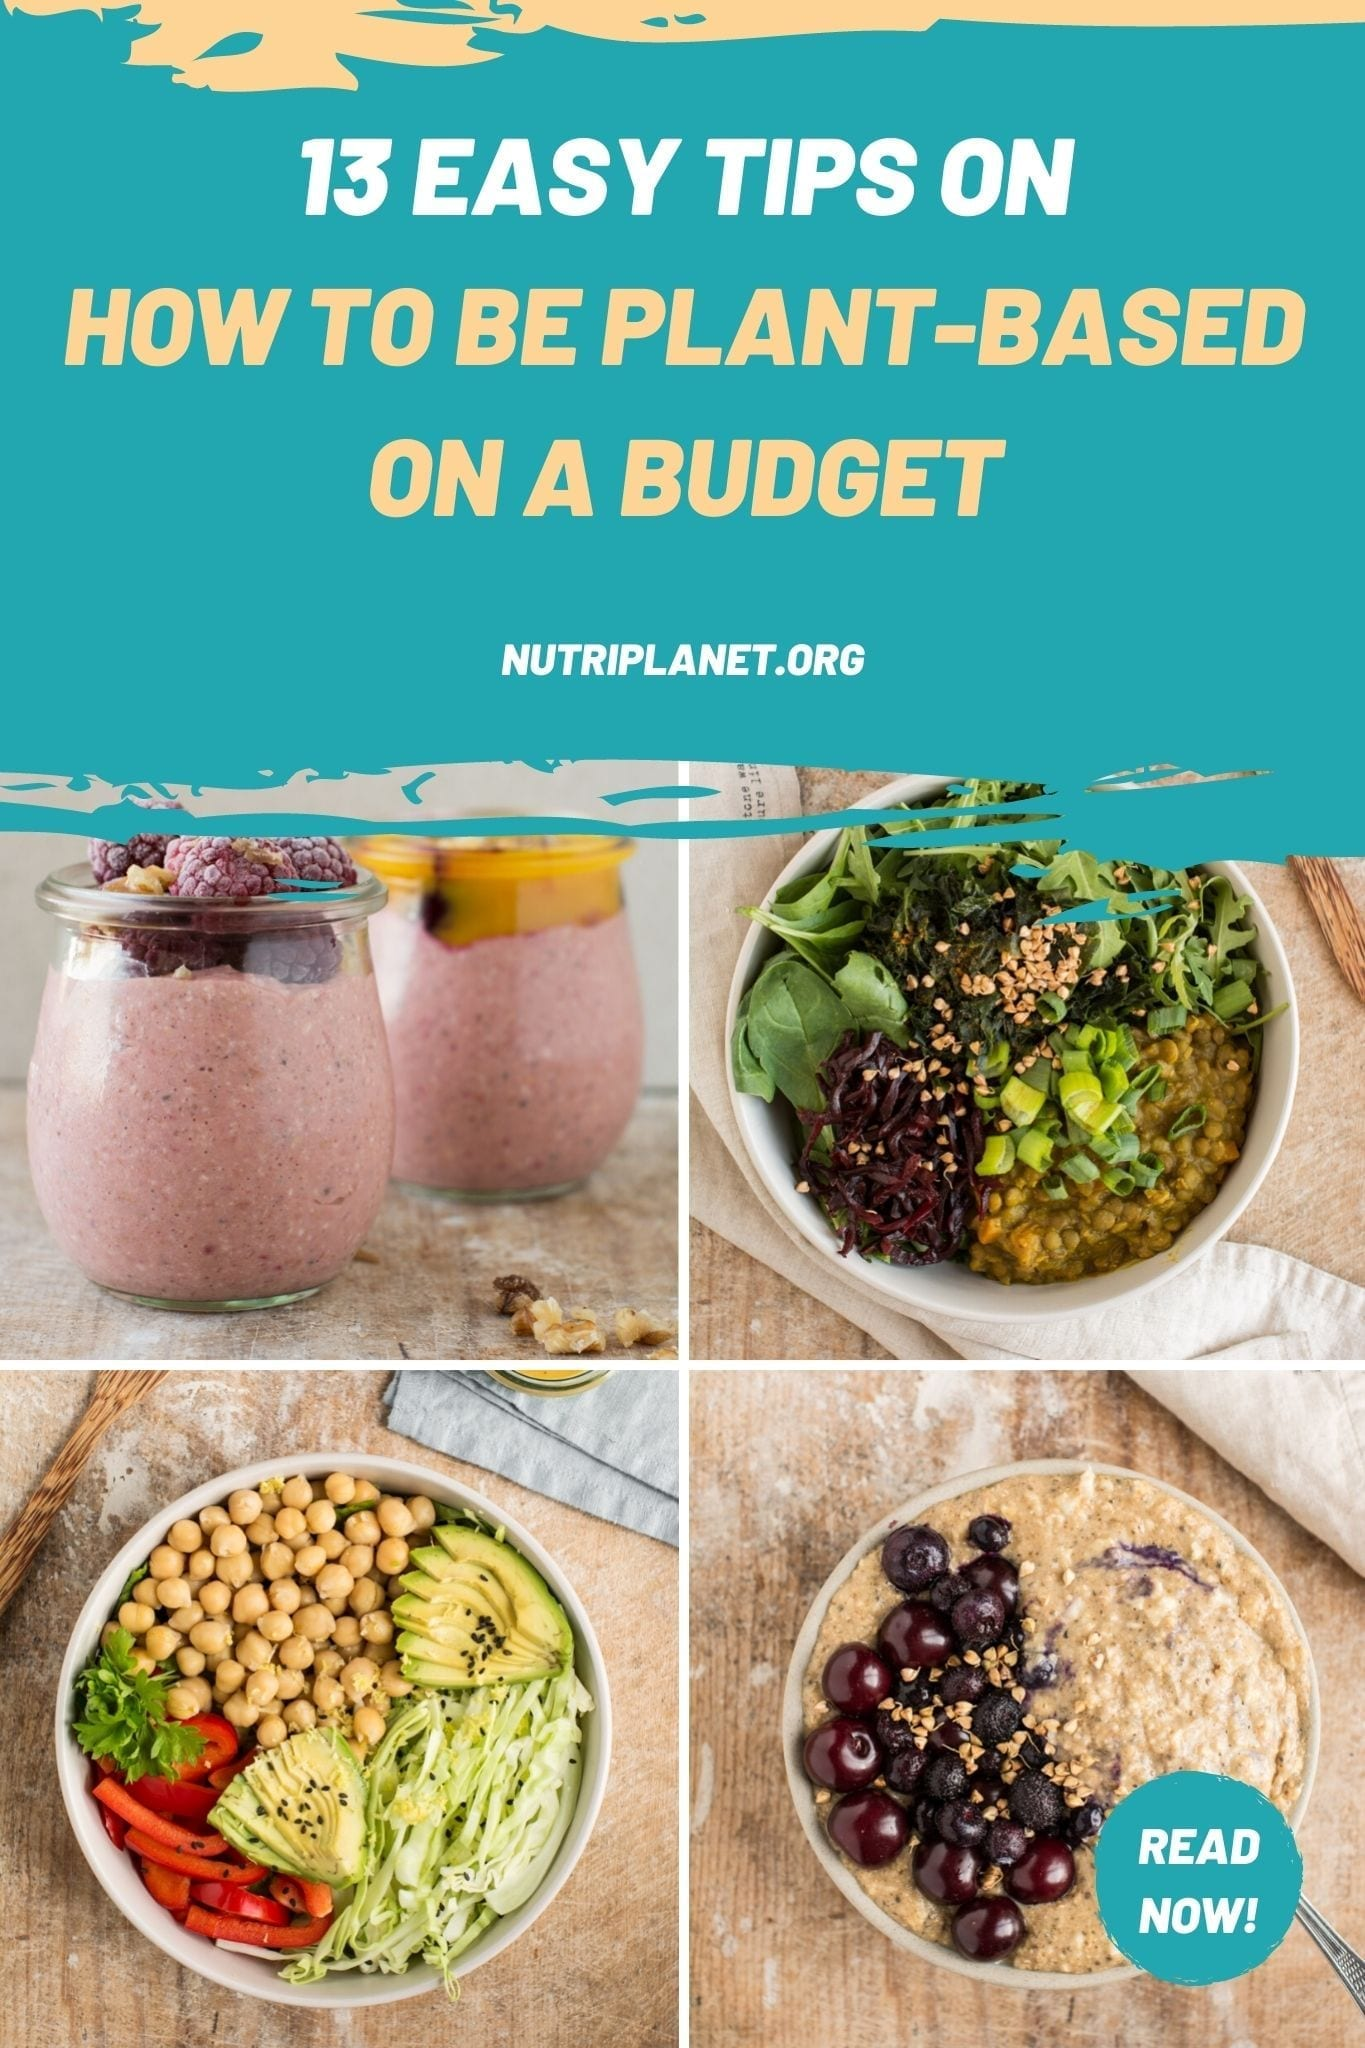 13 easy tips on how to be plant-based on a budget. Healthy and sustainable lifestyle doesn't have to be expensive!